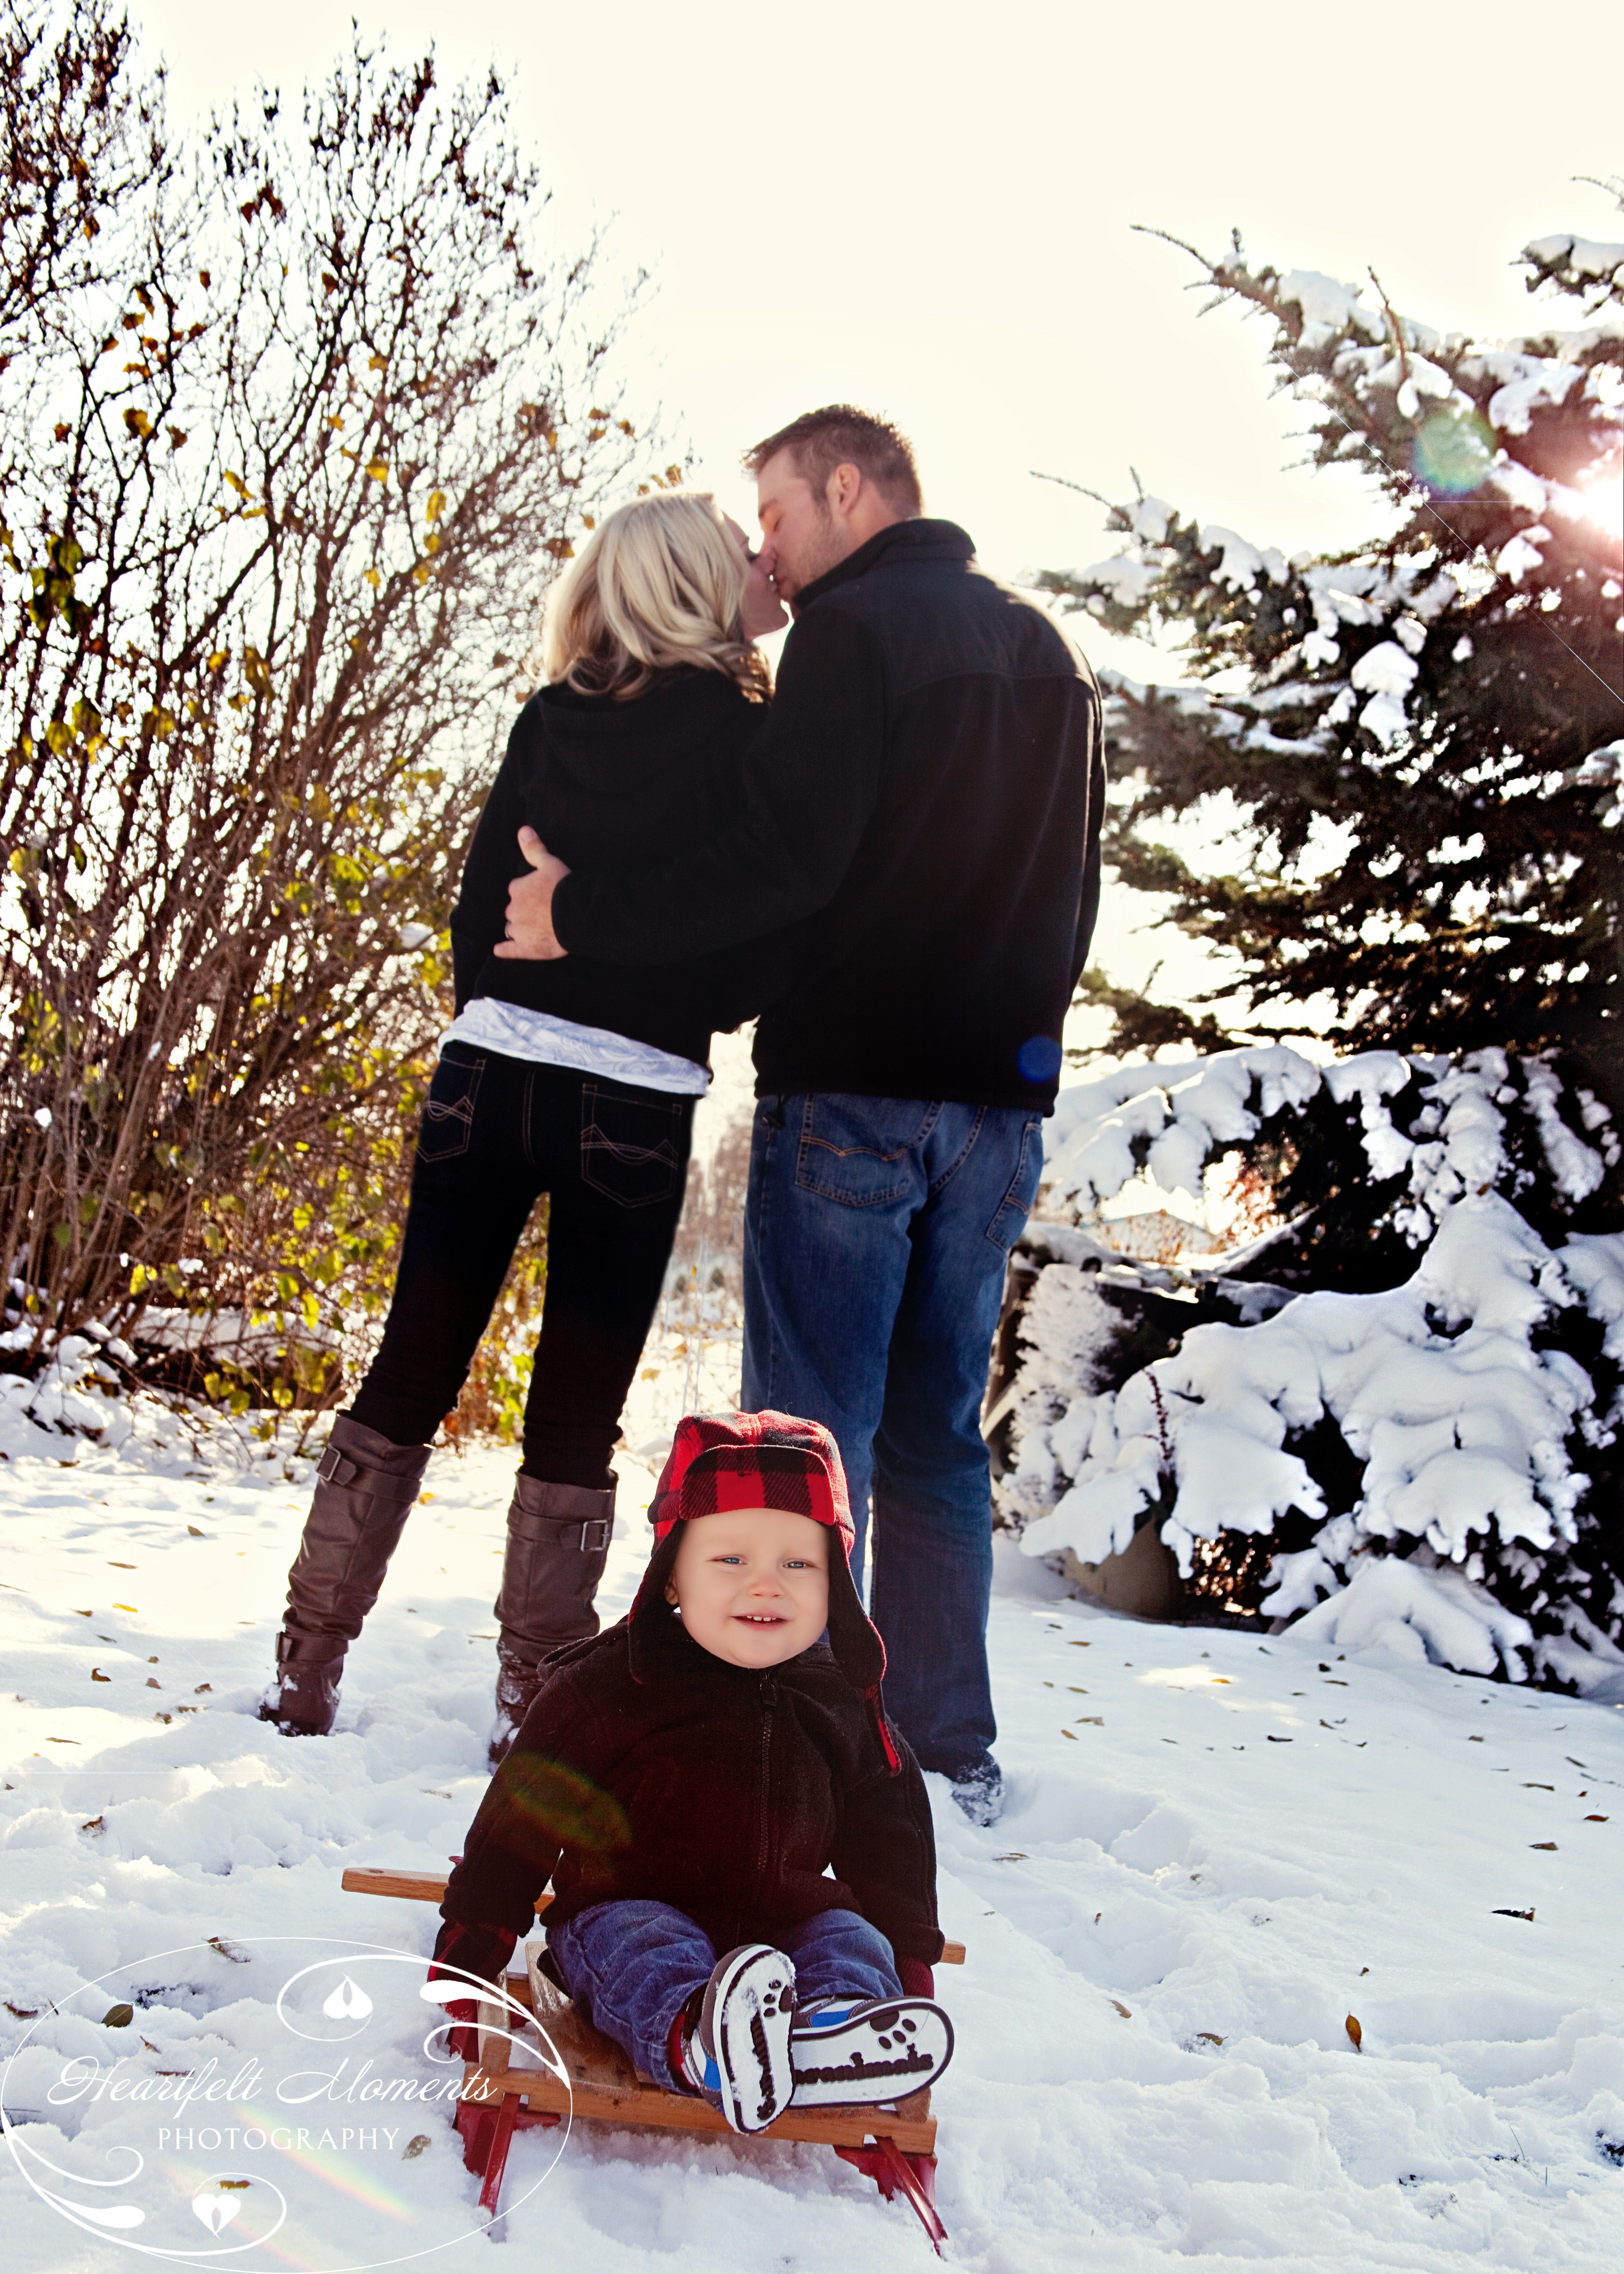 17 Best images about Family photo ideas on Pinterest